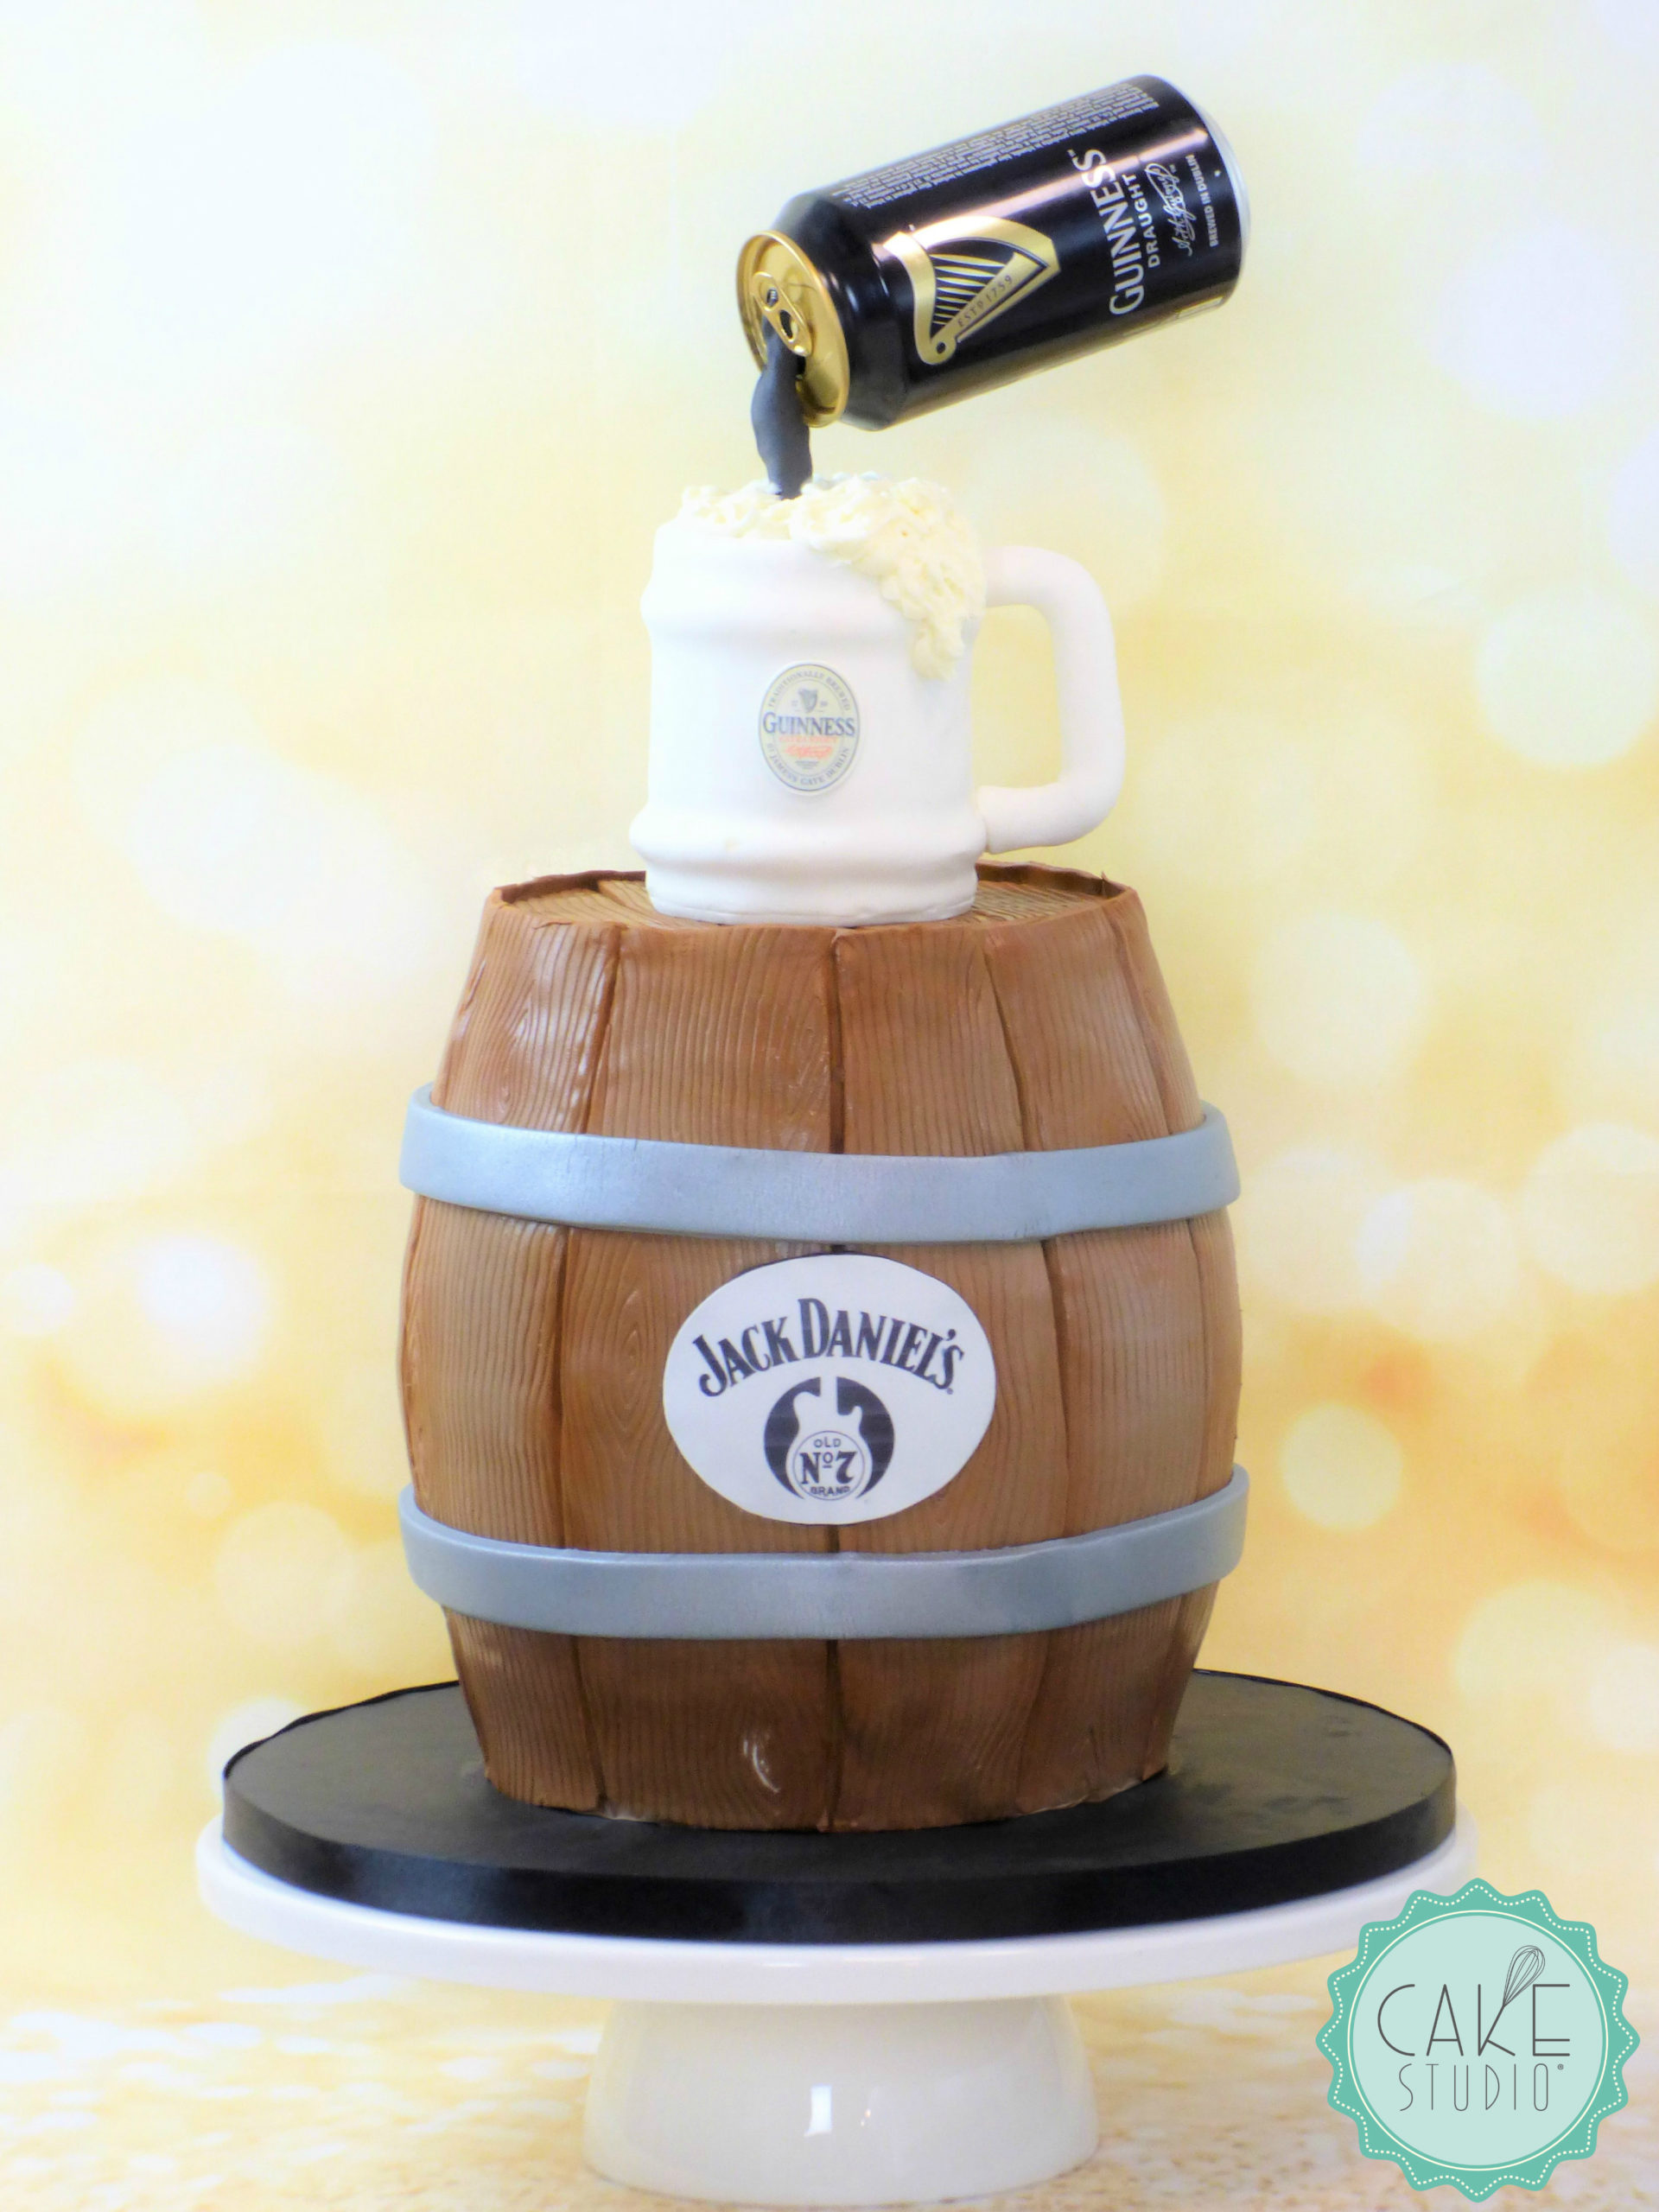 gravity defying cake compleanno botte boccale birra guinness